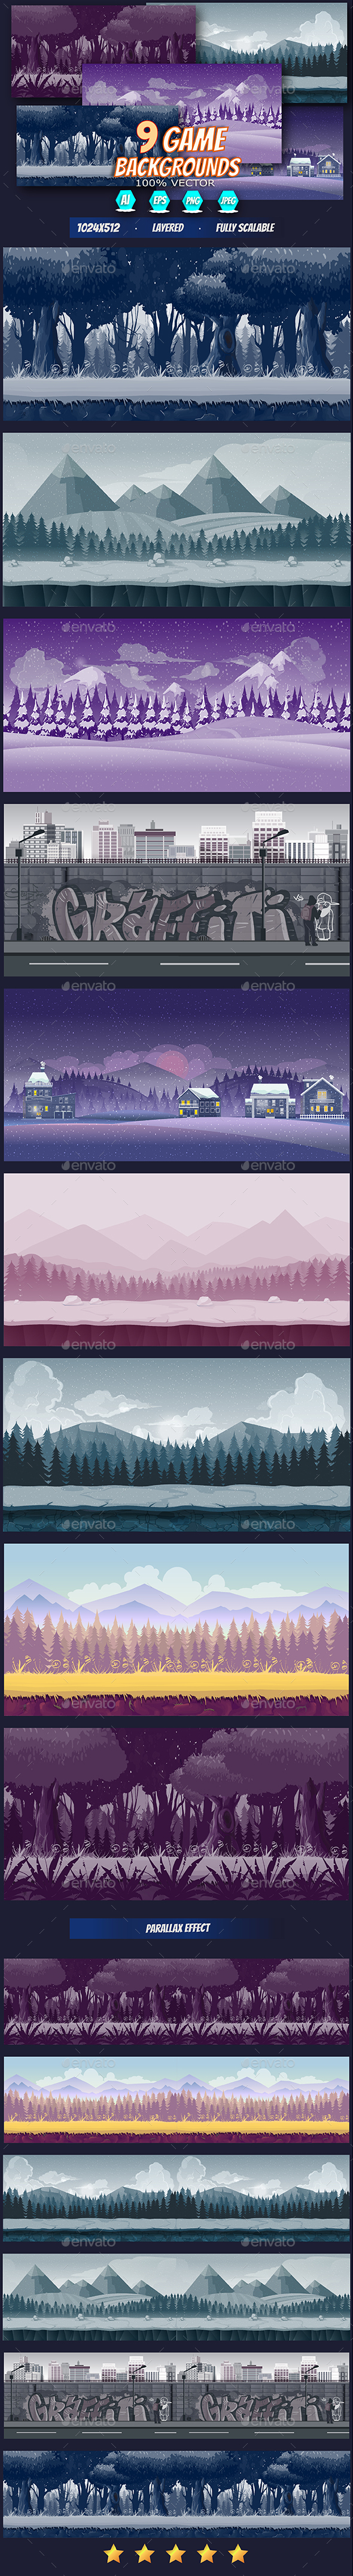 Atmosphere Apps backgrounds